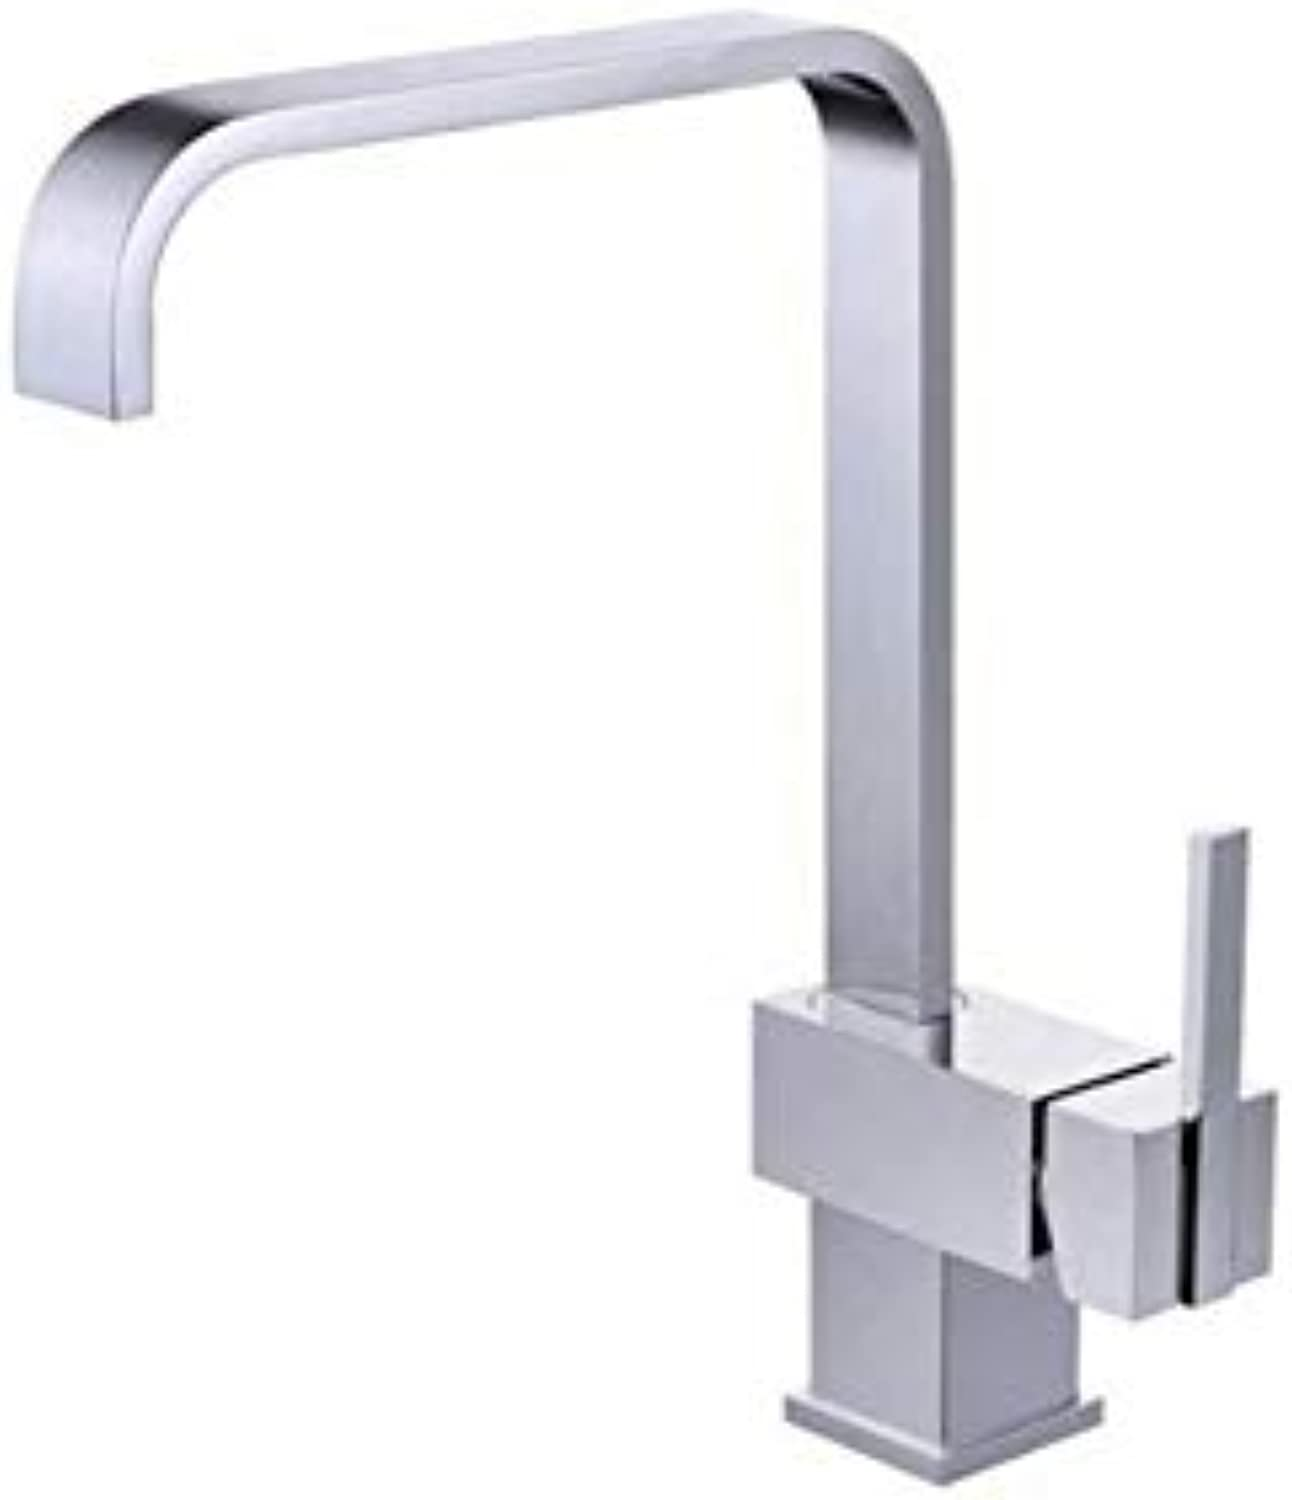 Taps Kitchen Sinkkitchen Sink Faucet Deck Mounted Chrome Polished Basin Faucet Hot&Cold